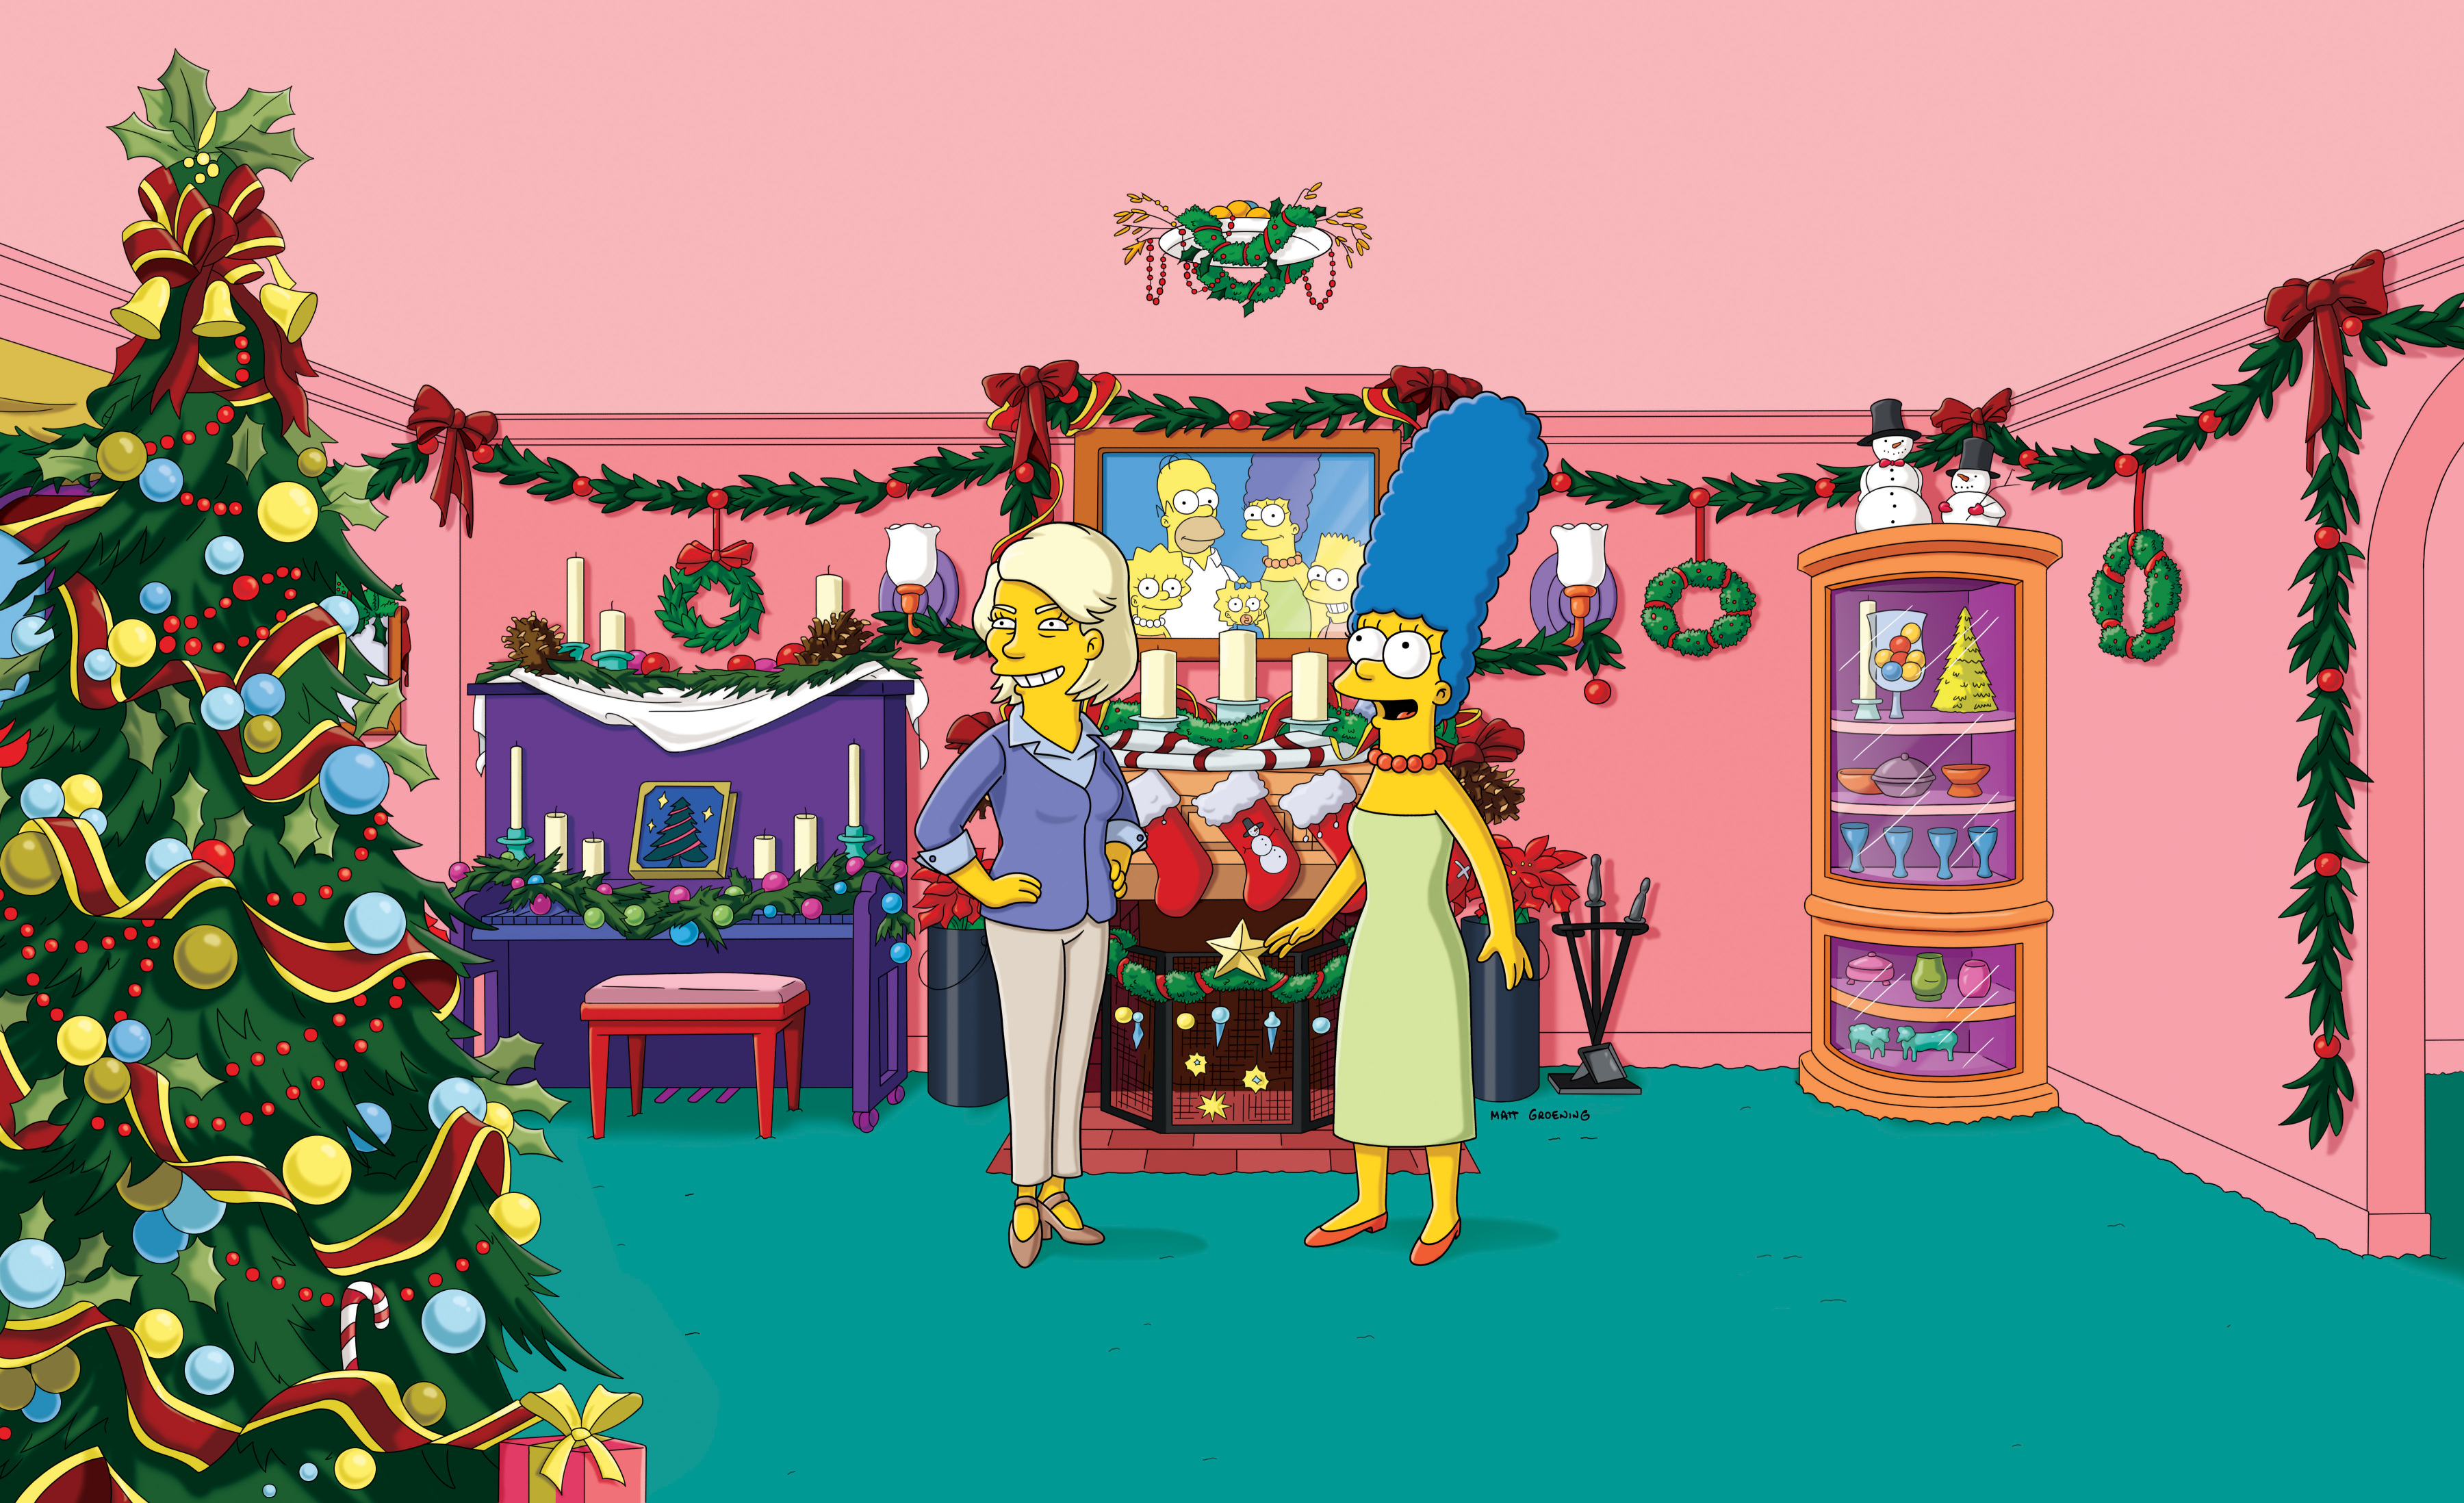 Simpsons Christmas g wallpaper 3600x2196 184464 3600x2196